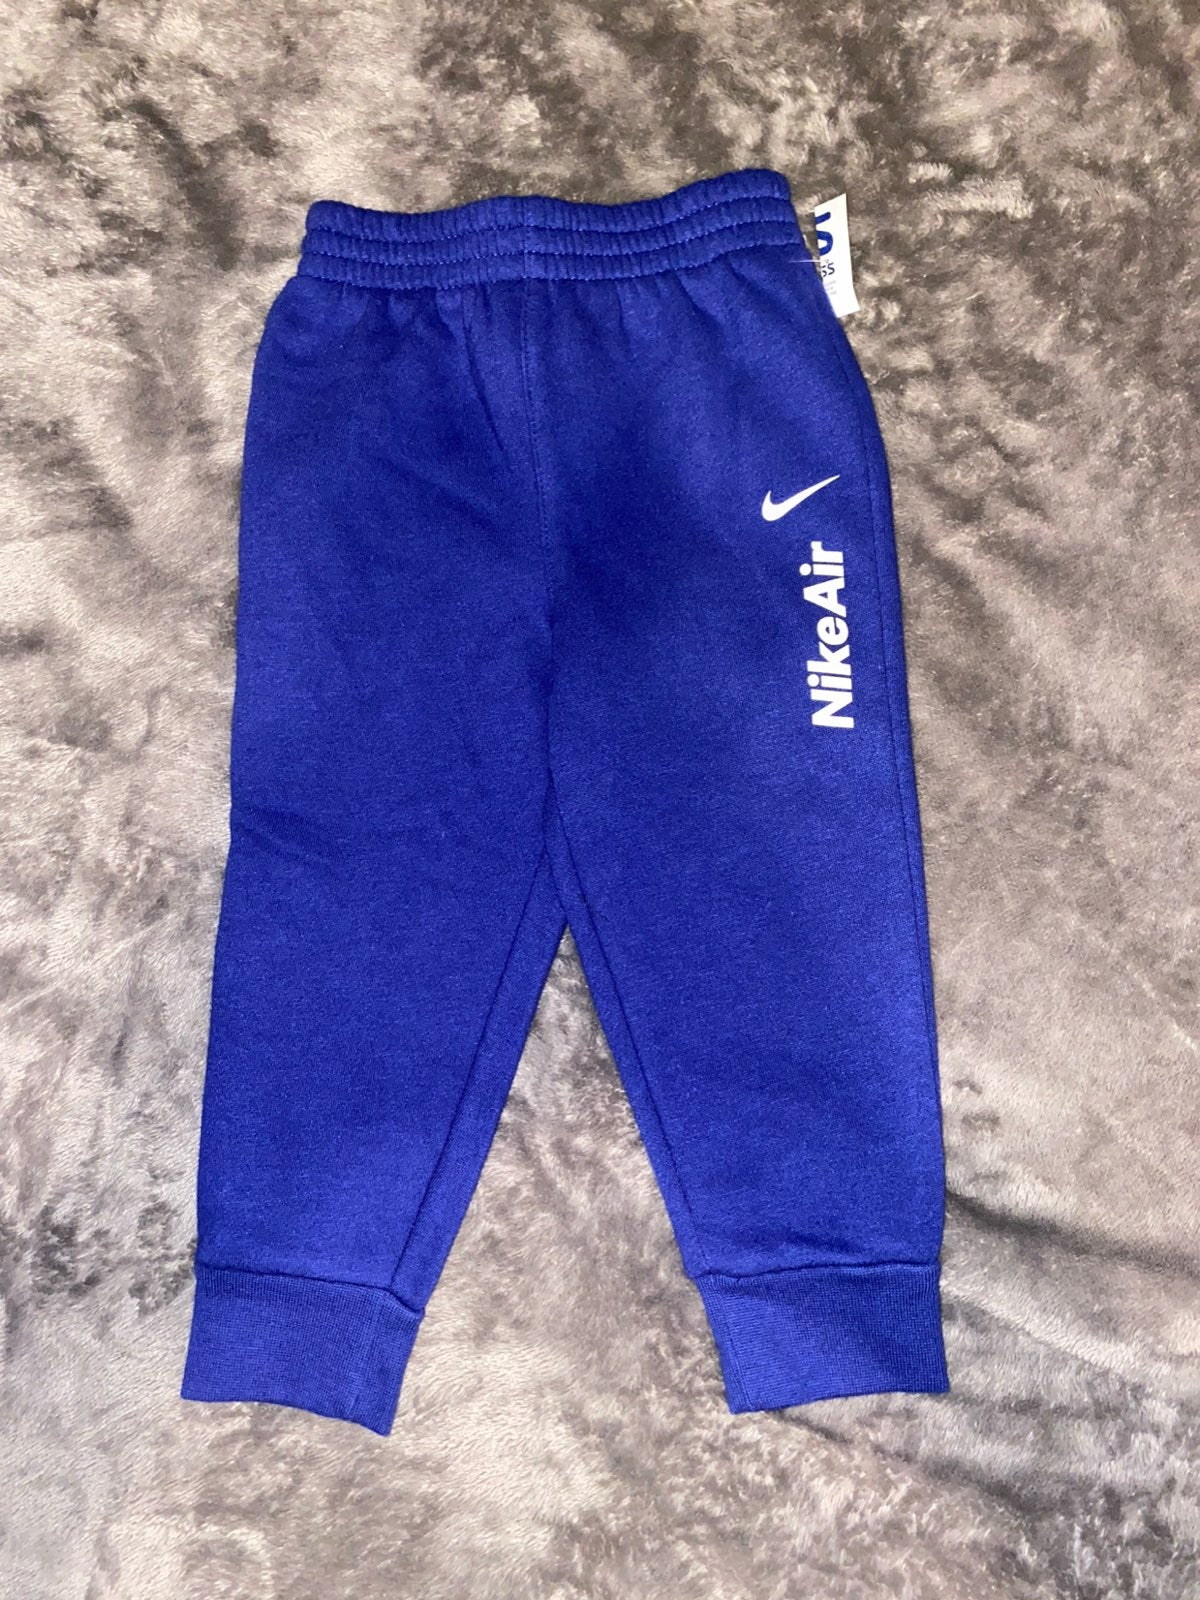 Nike Air Sweatpants/Brand New With Tags.